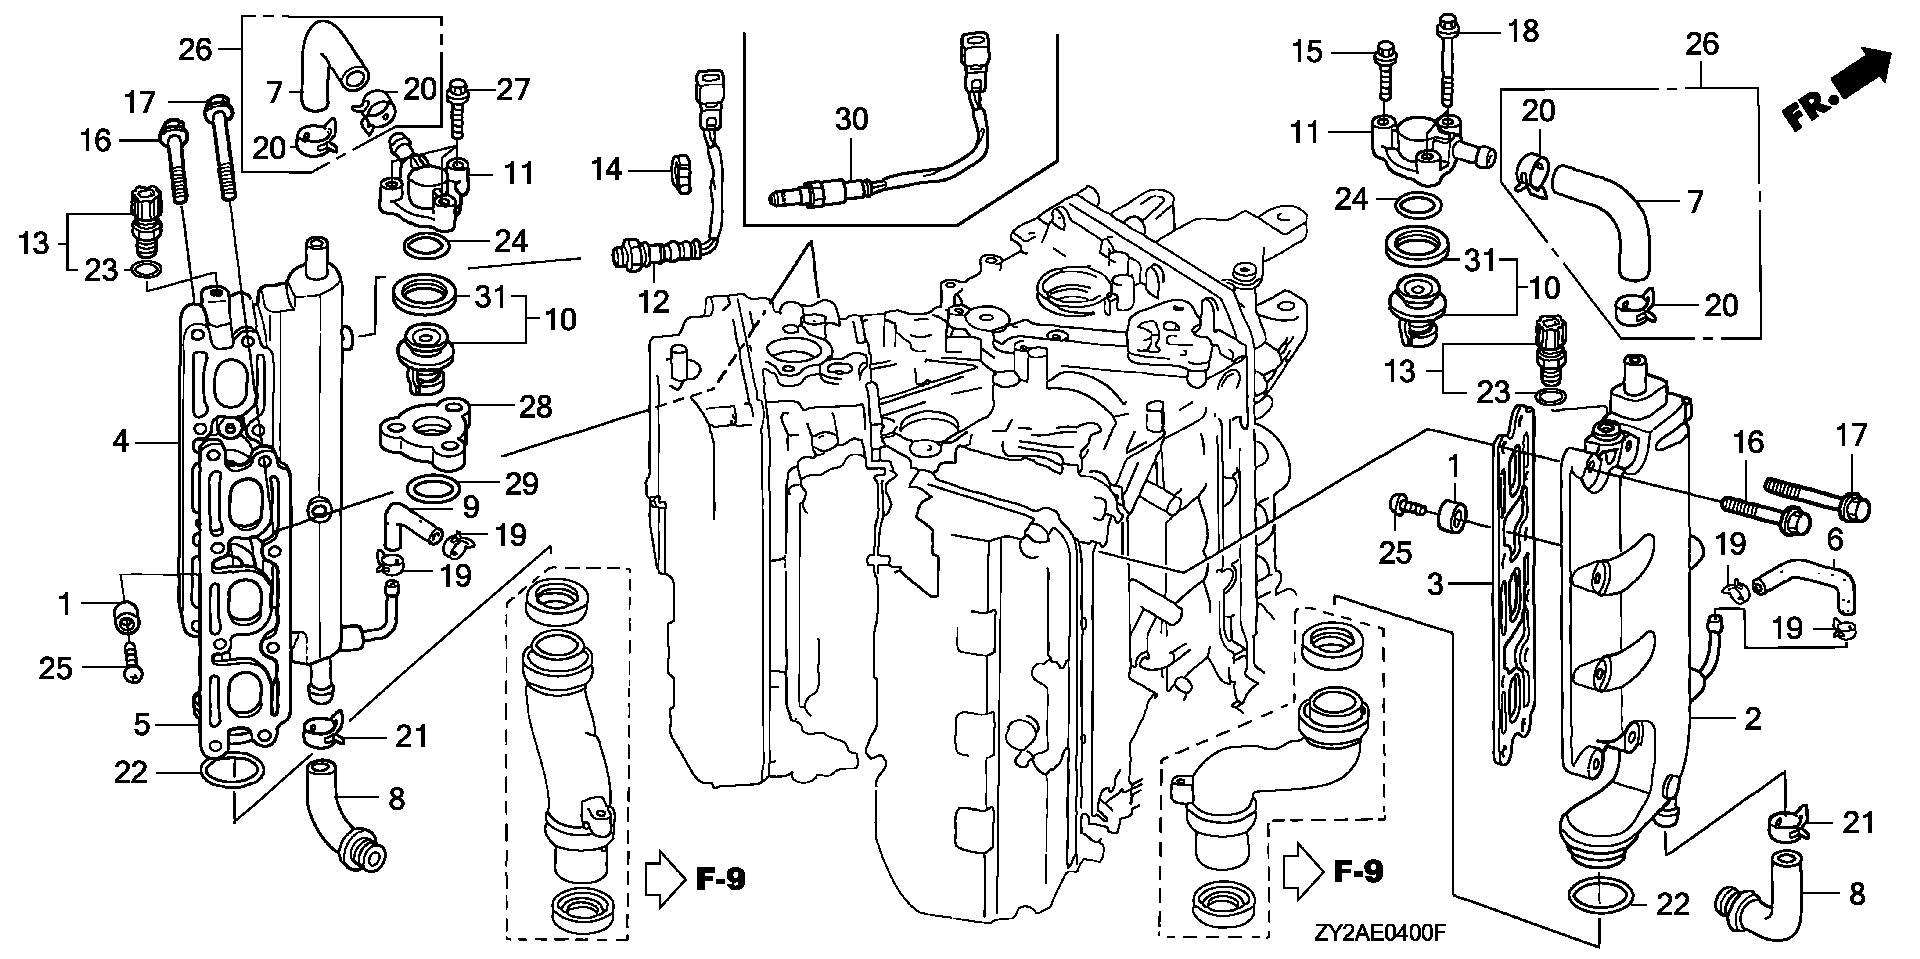 EXHAUST MANIFOLD         @THERMOSTAT